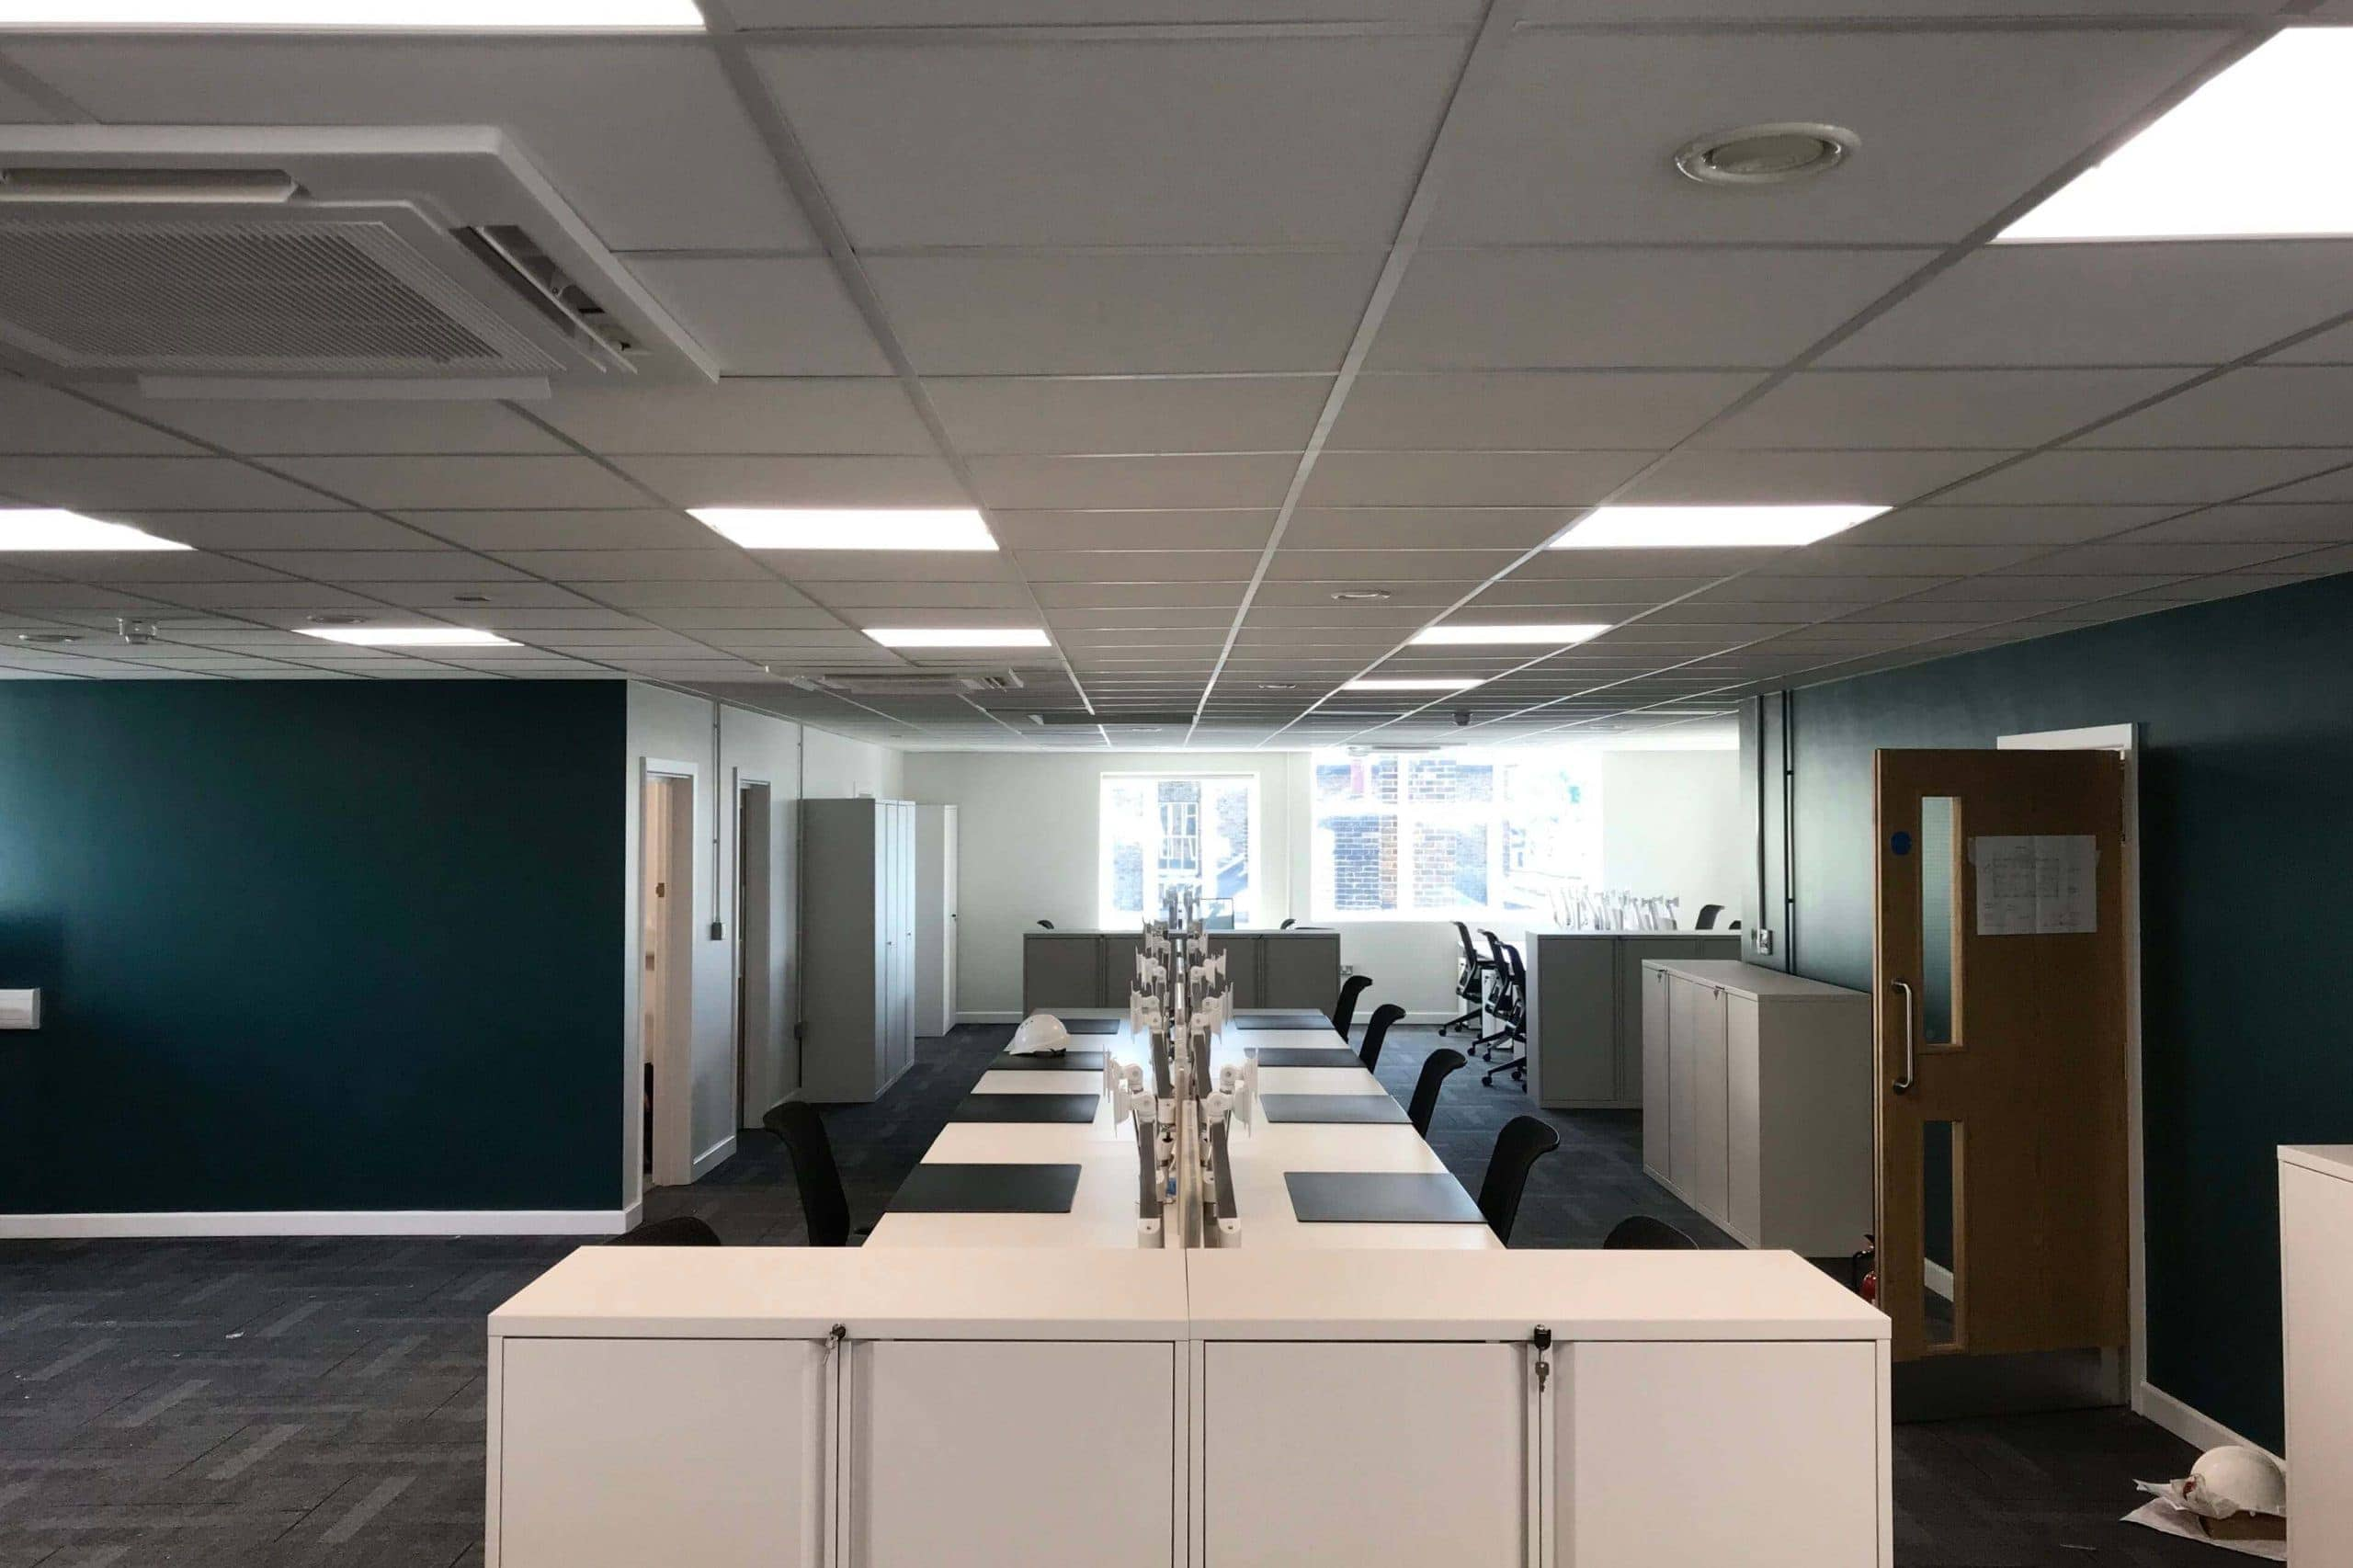 Norwood junction large commercial air conditioning solution by SubCool FM white cassette units in ceiling of office desk space